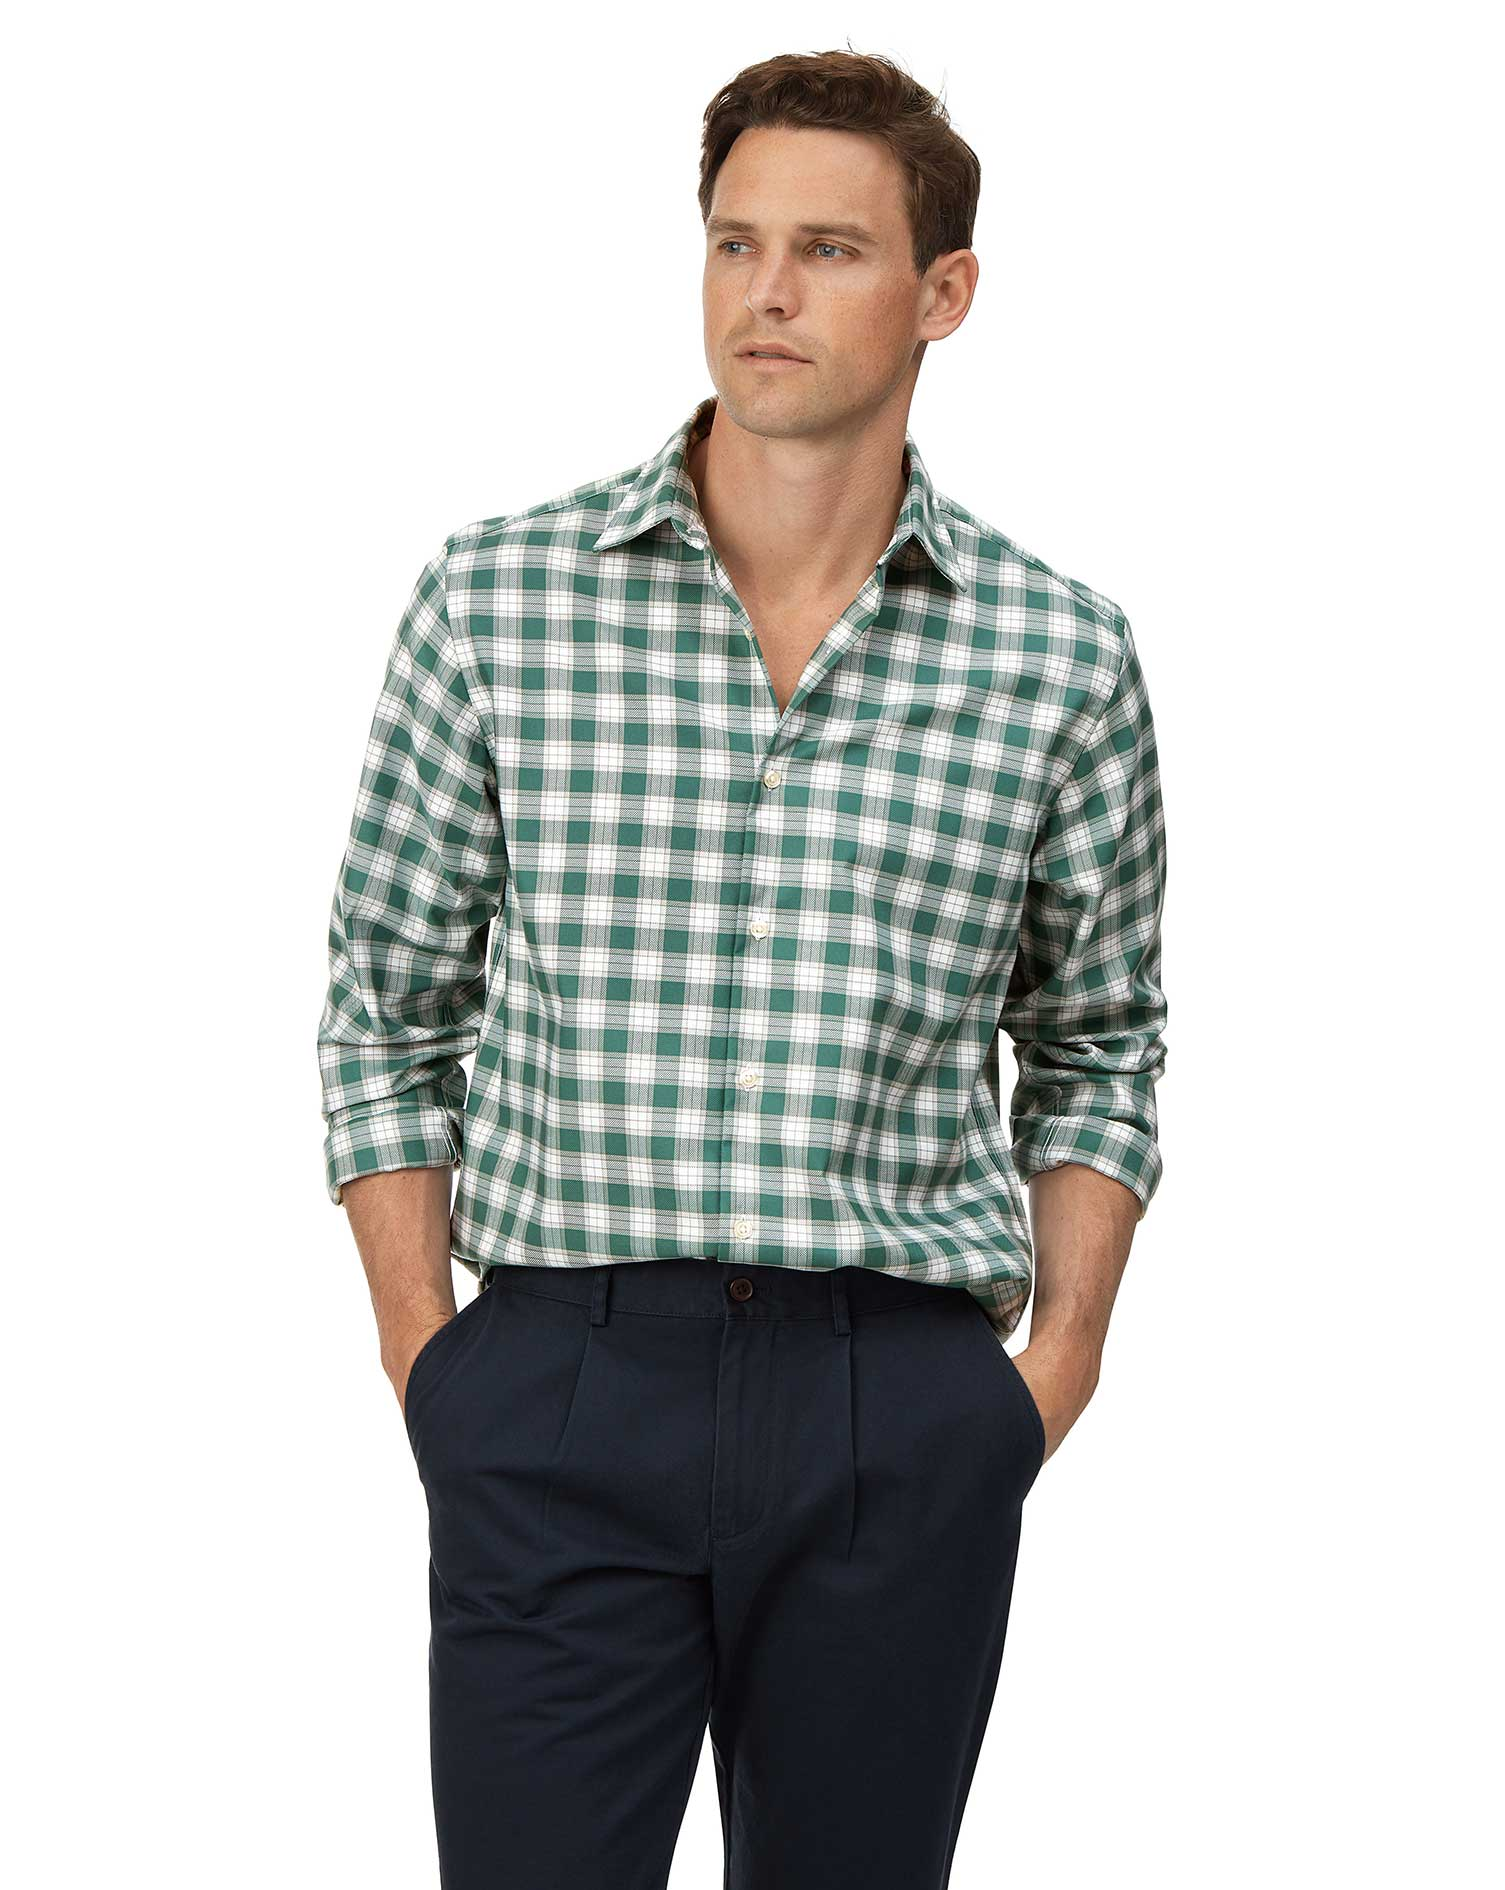 Classic Fit Soft Washed Non-Iron Stretch Oxford Green and White Check Cotton Shirt Single Cuff Size